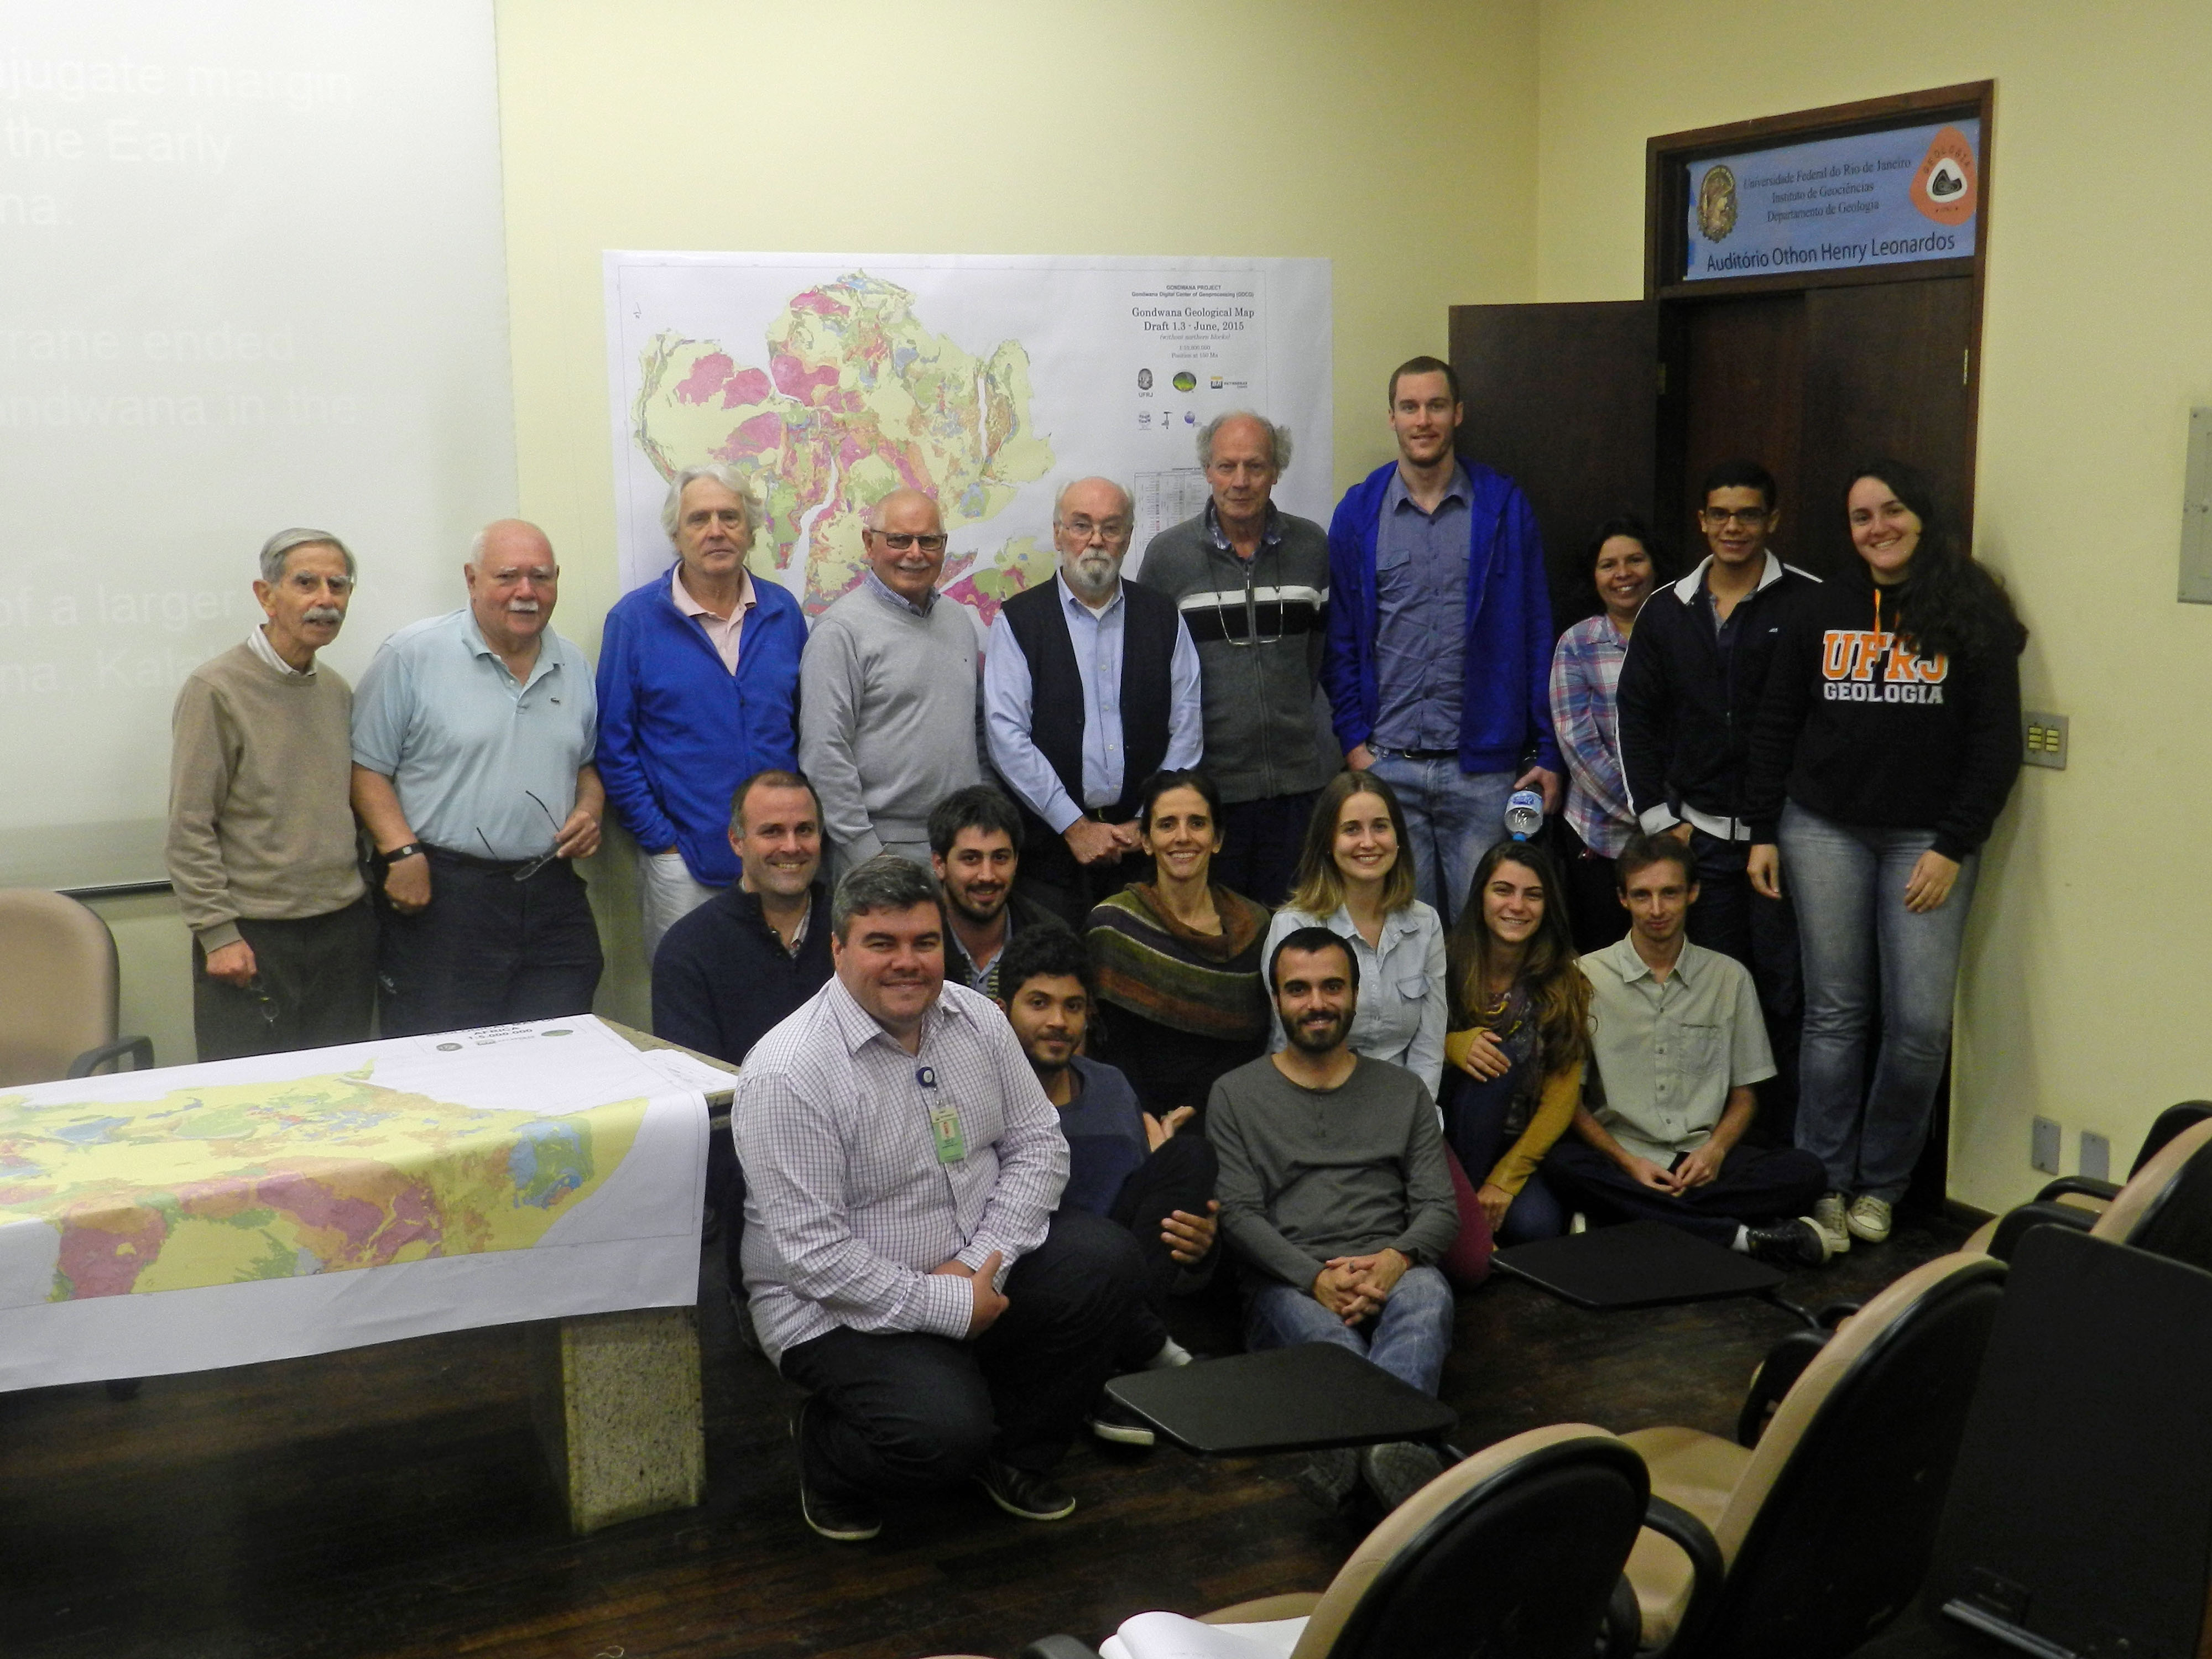 Nicholas Barnett-Moore with the Gondwana Map Project team in Rio de Janeiro